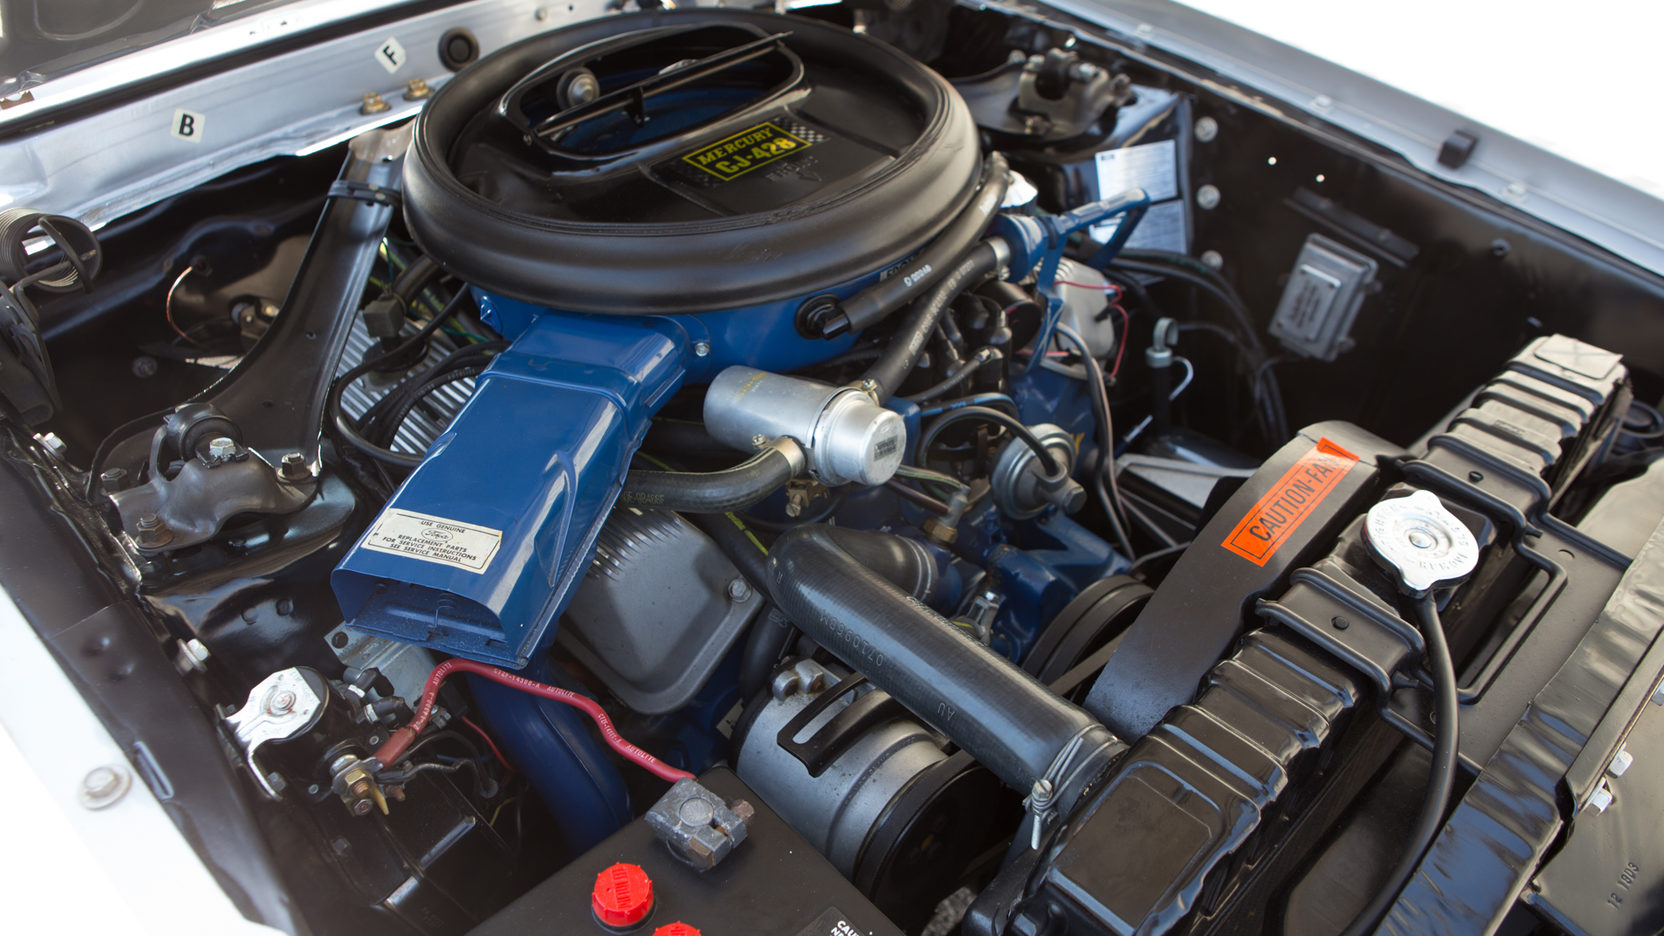 1969 Mercury Cougar engine cobra jet